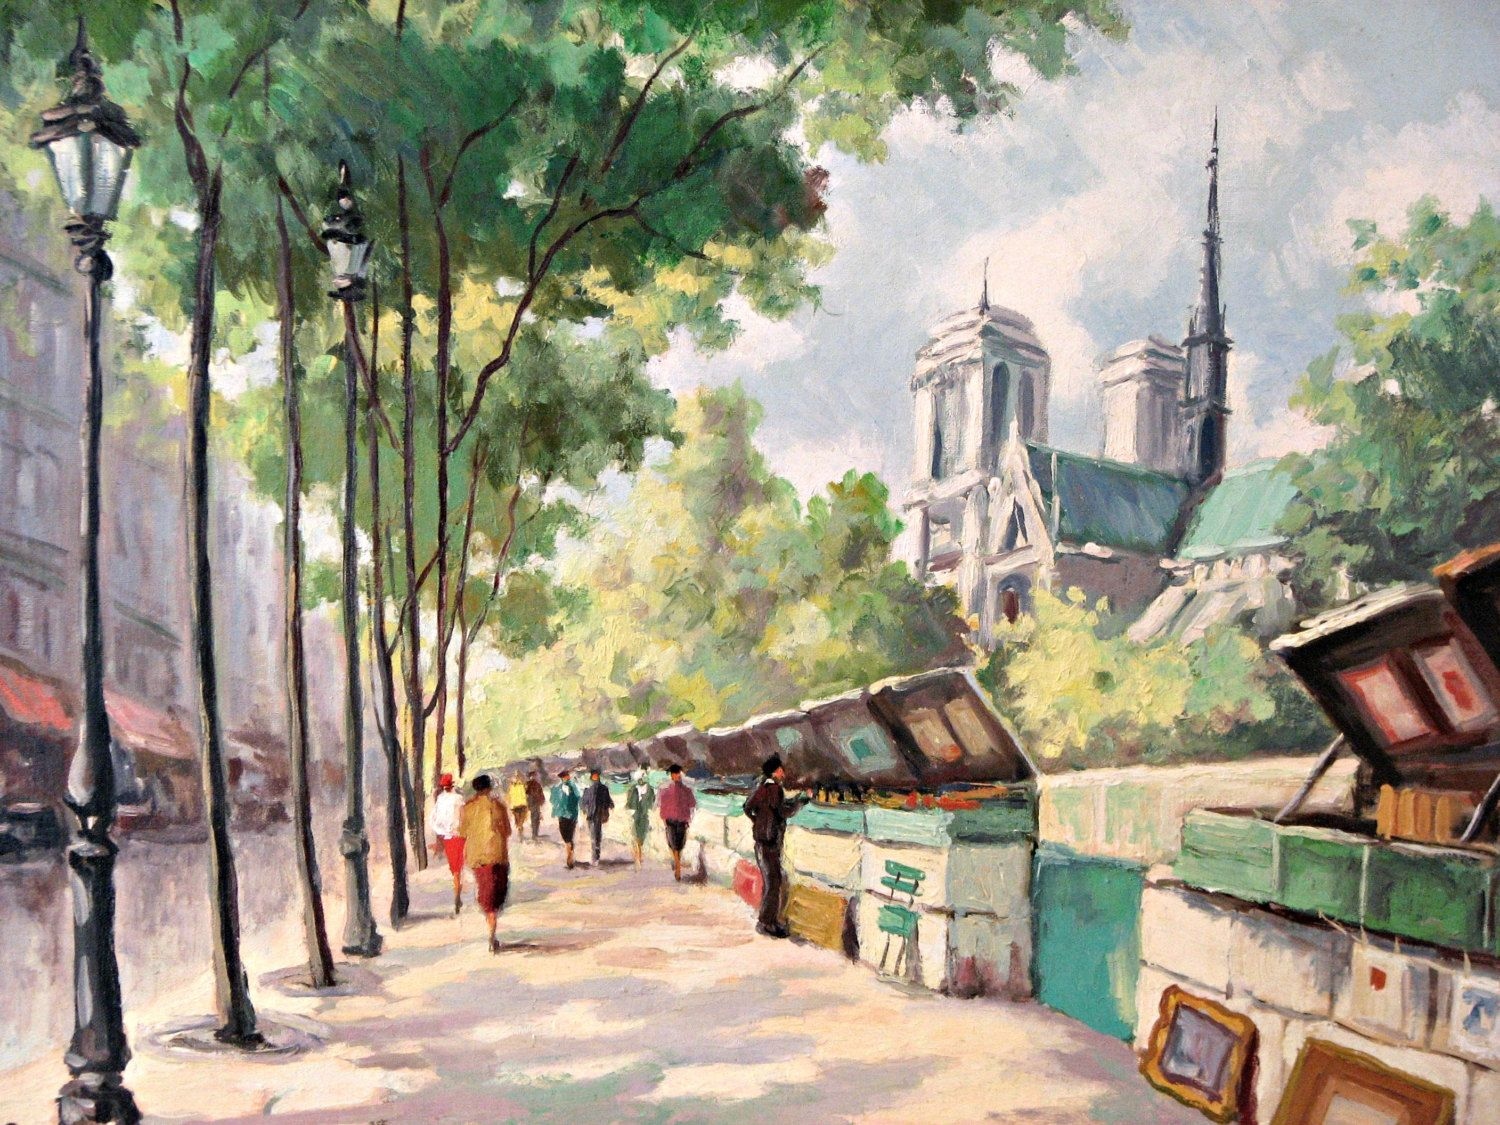 Paris Acrylic Painting Hard To Read Signature Beautiful Colors